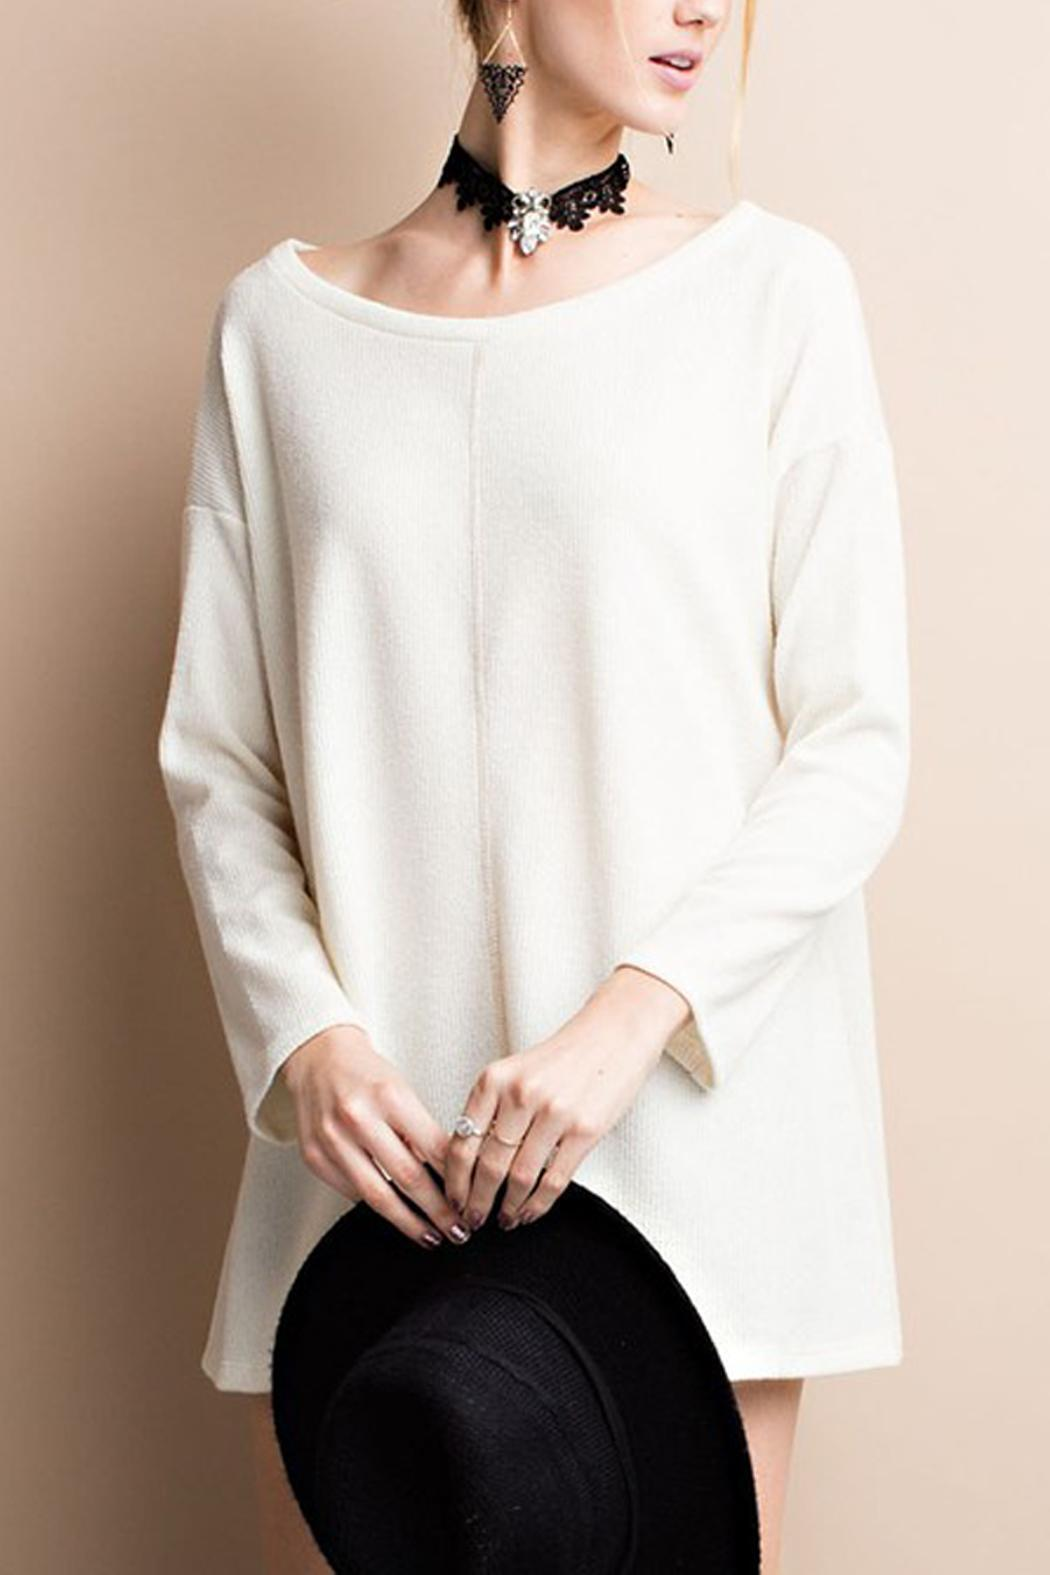 A heavy, cable knit, wool sweater is perfect for a casual look, but when it is time to dress it up a bit there is a different sweater option—the tunic. When paired .